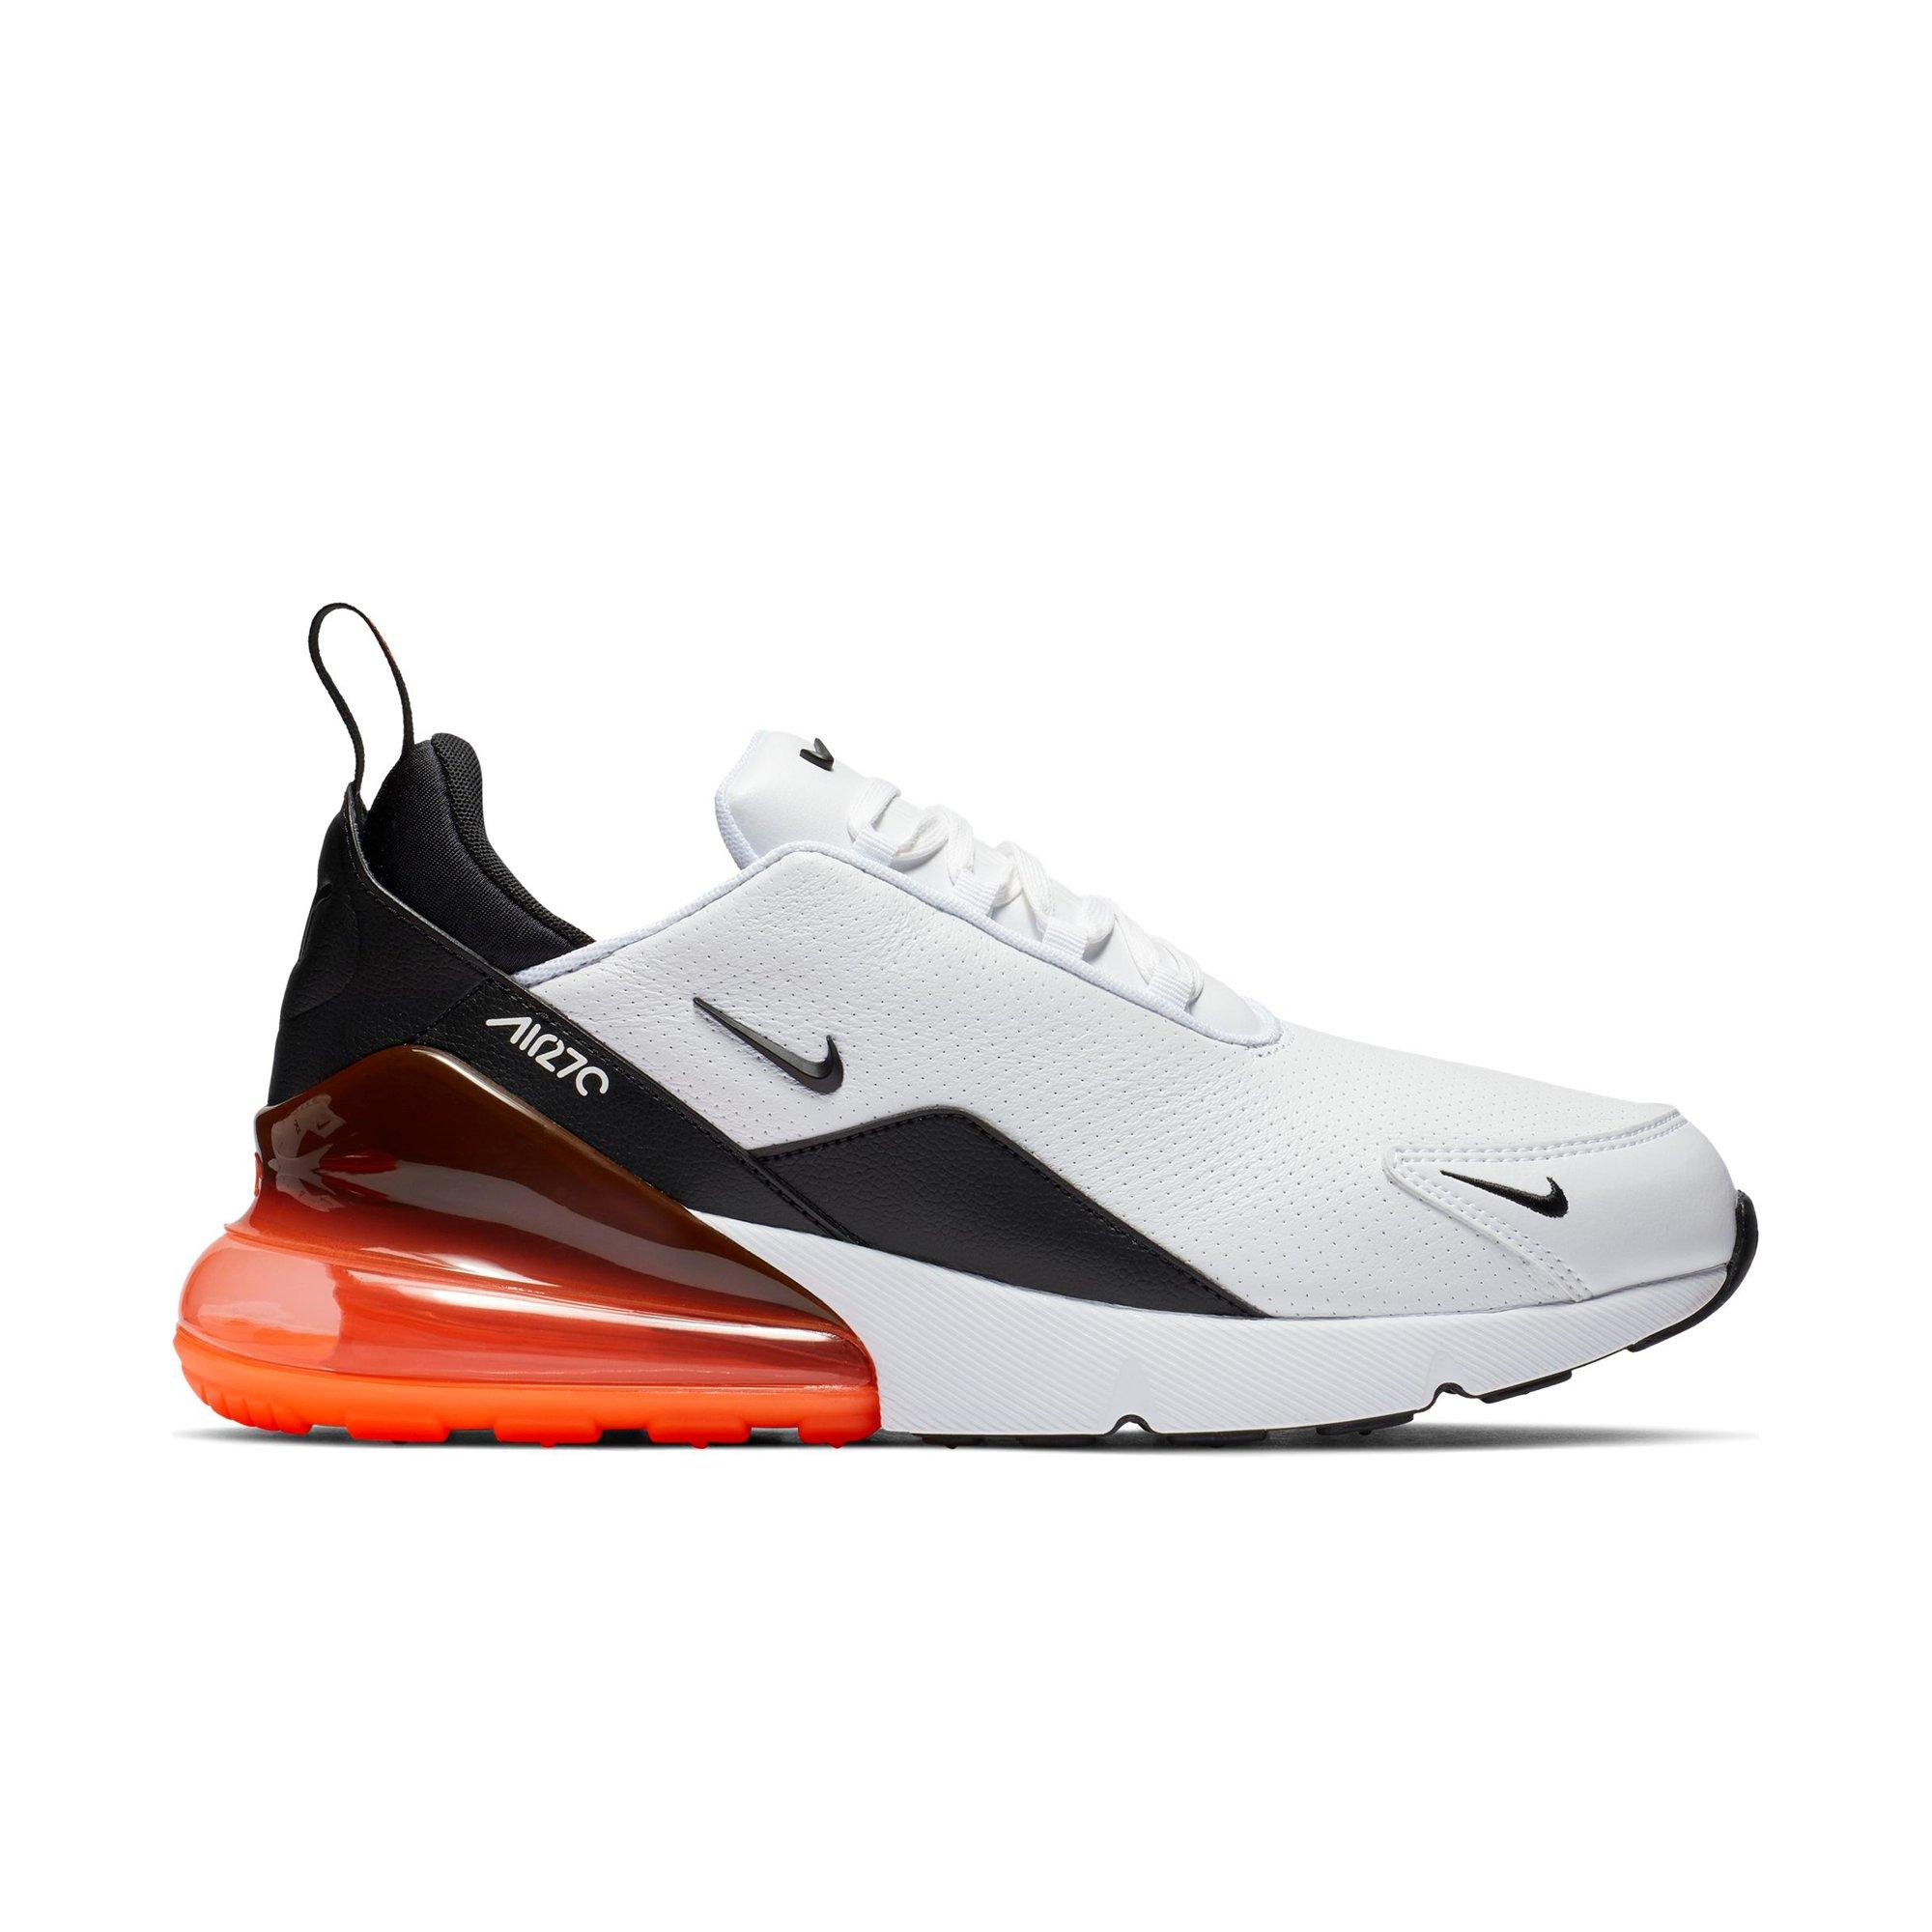 Nike Air Max 270 Premium Leather